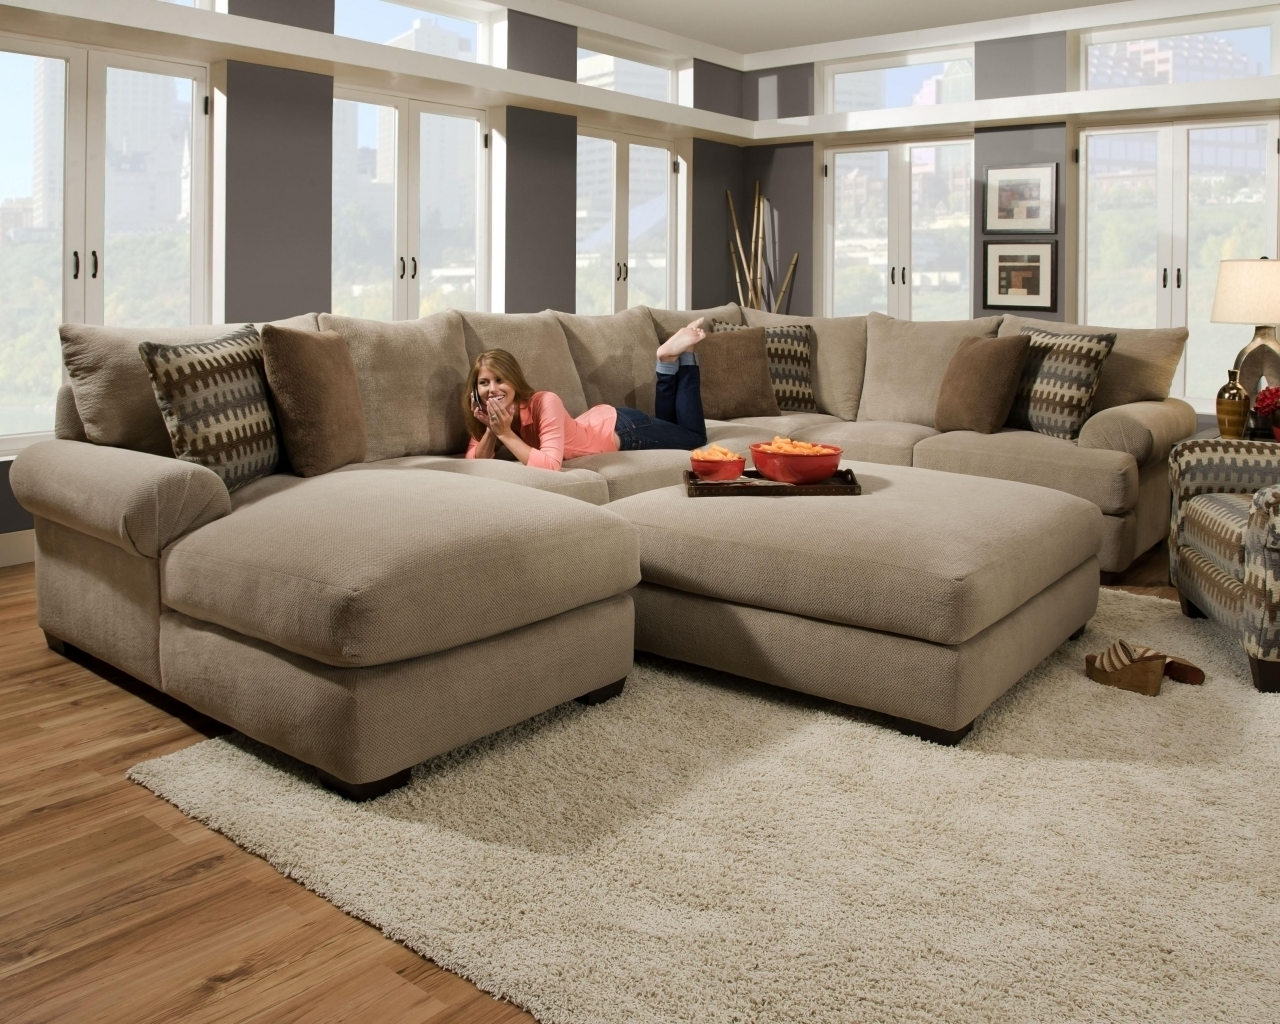 Amazing Sectional Sofa With Oversized Ottoman 59 For Your Best Throughout Most Current Sofas With Ottoman (View 19 of 20)